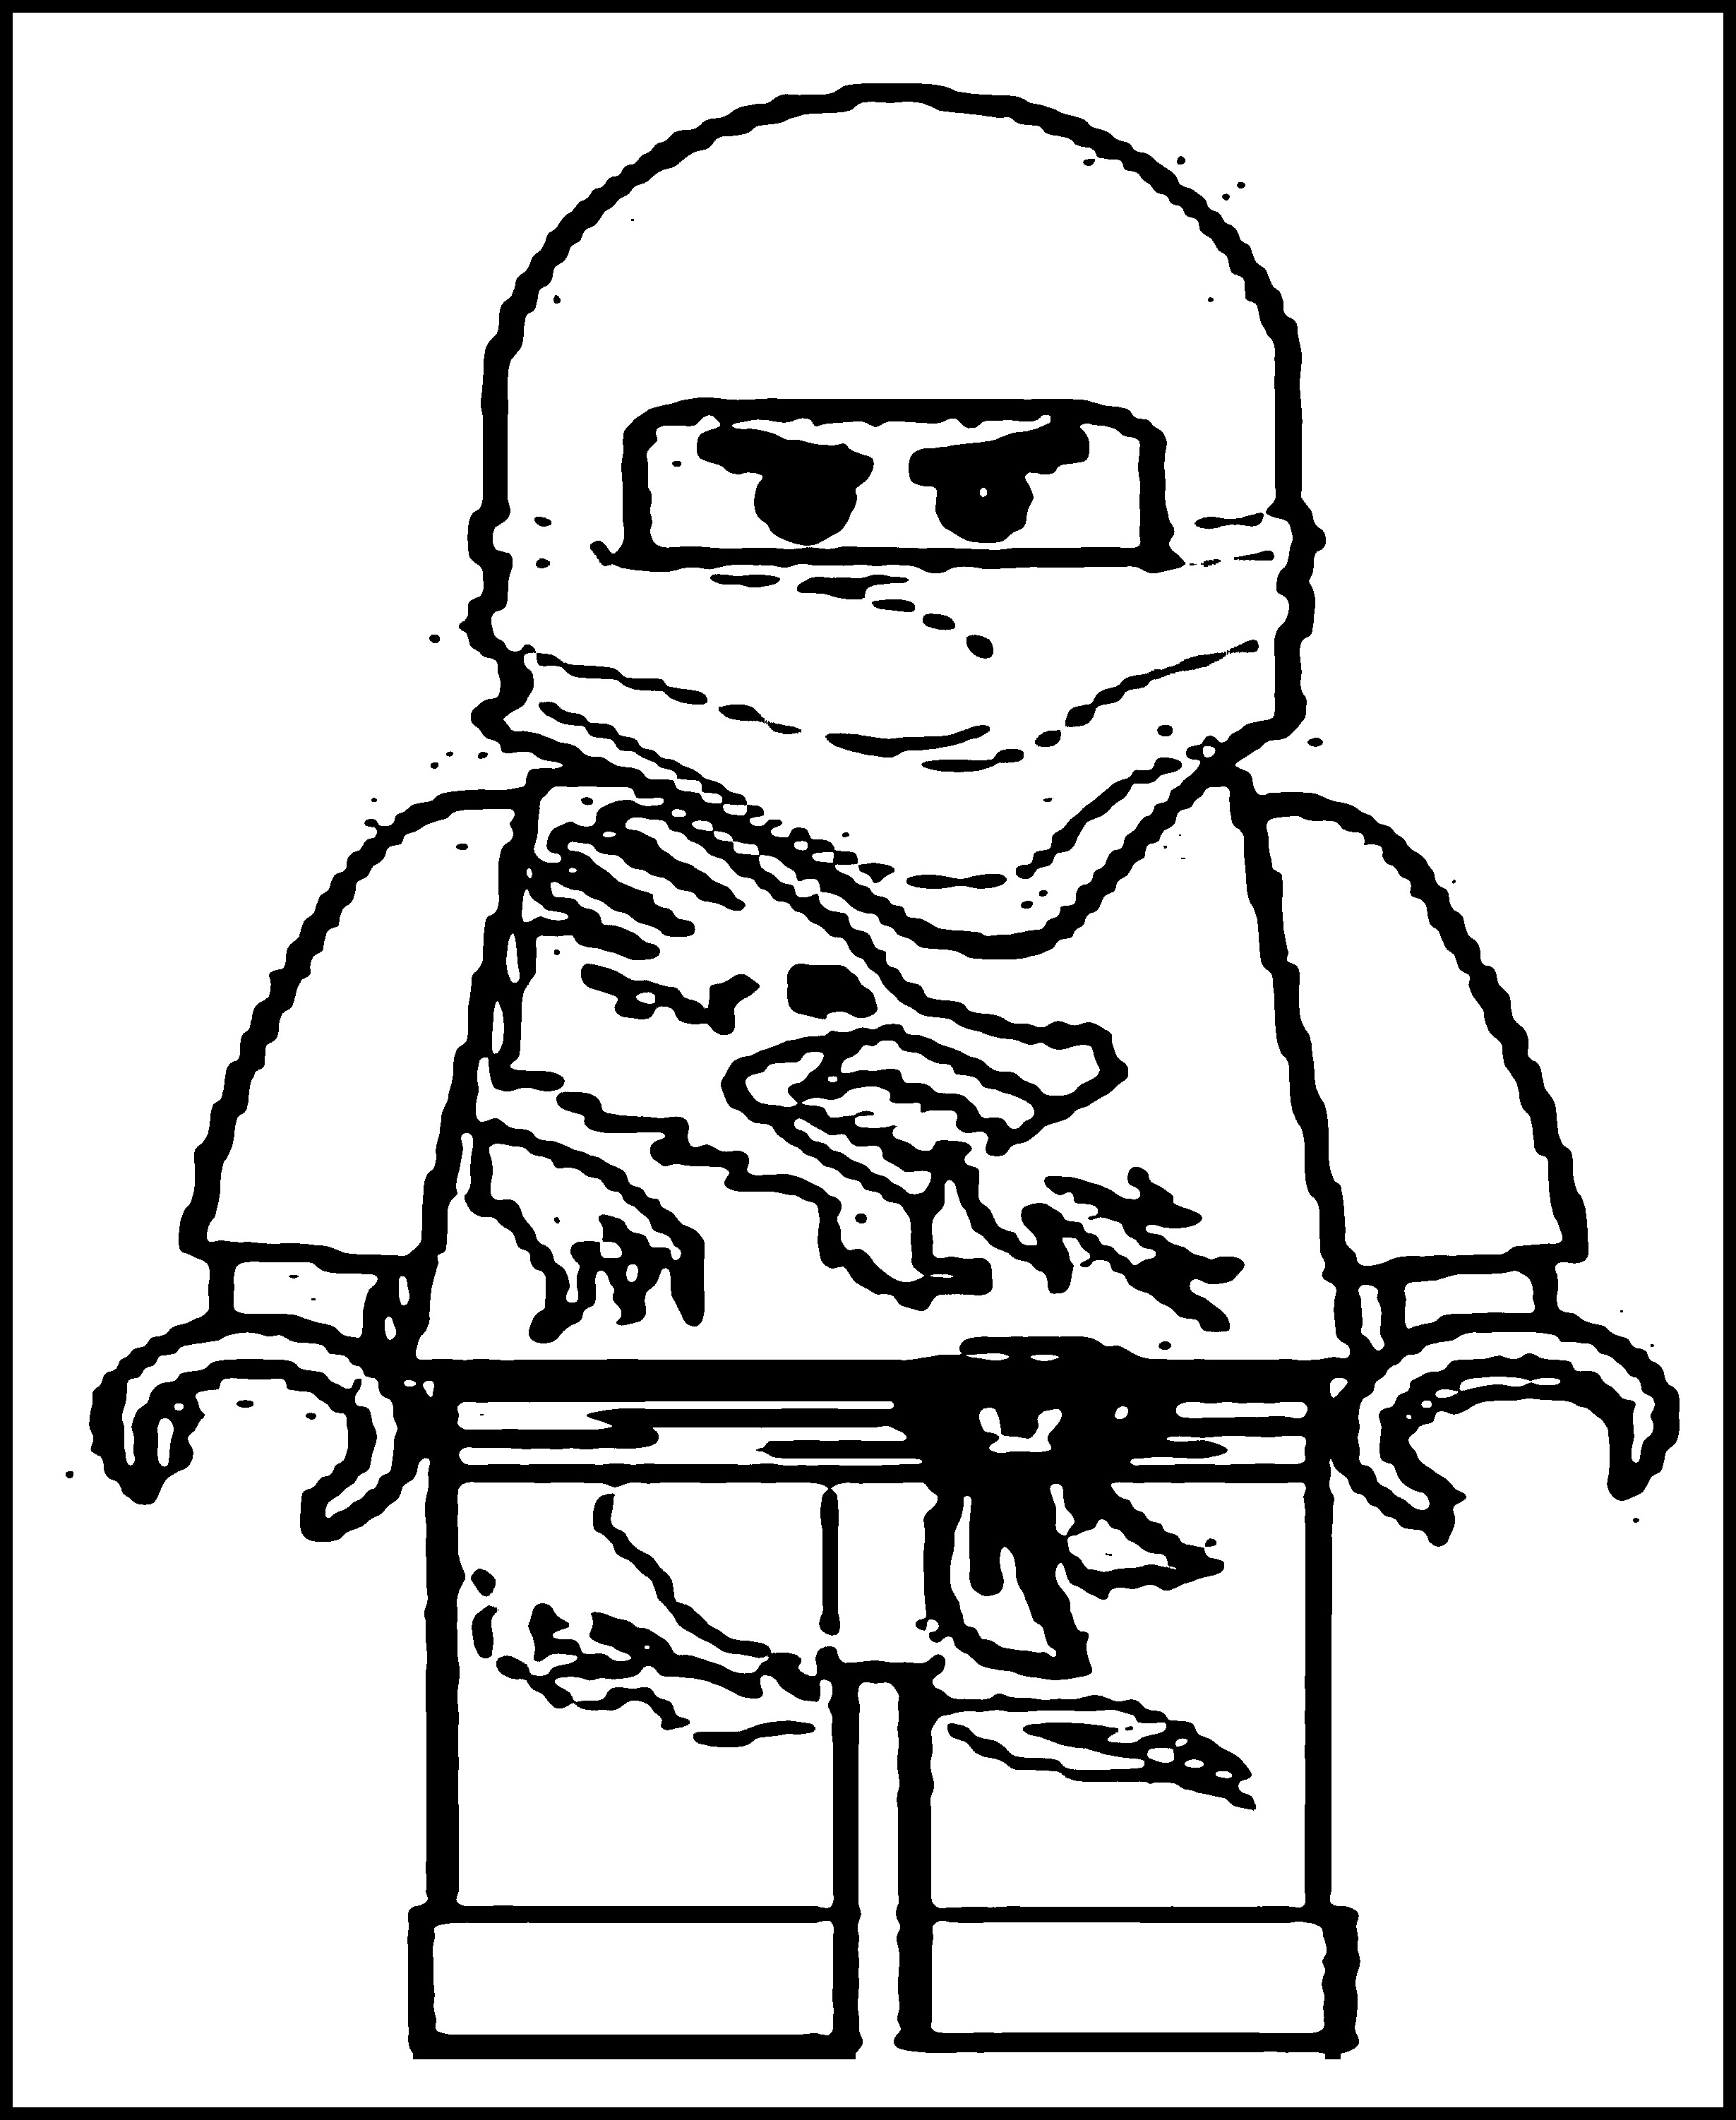 coloring pages ninjas cartoon - photo#24